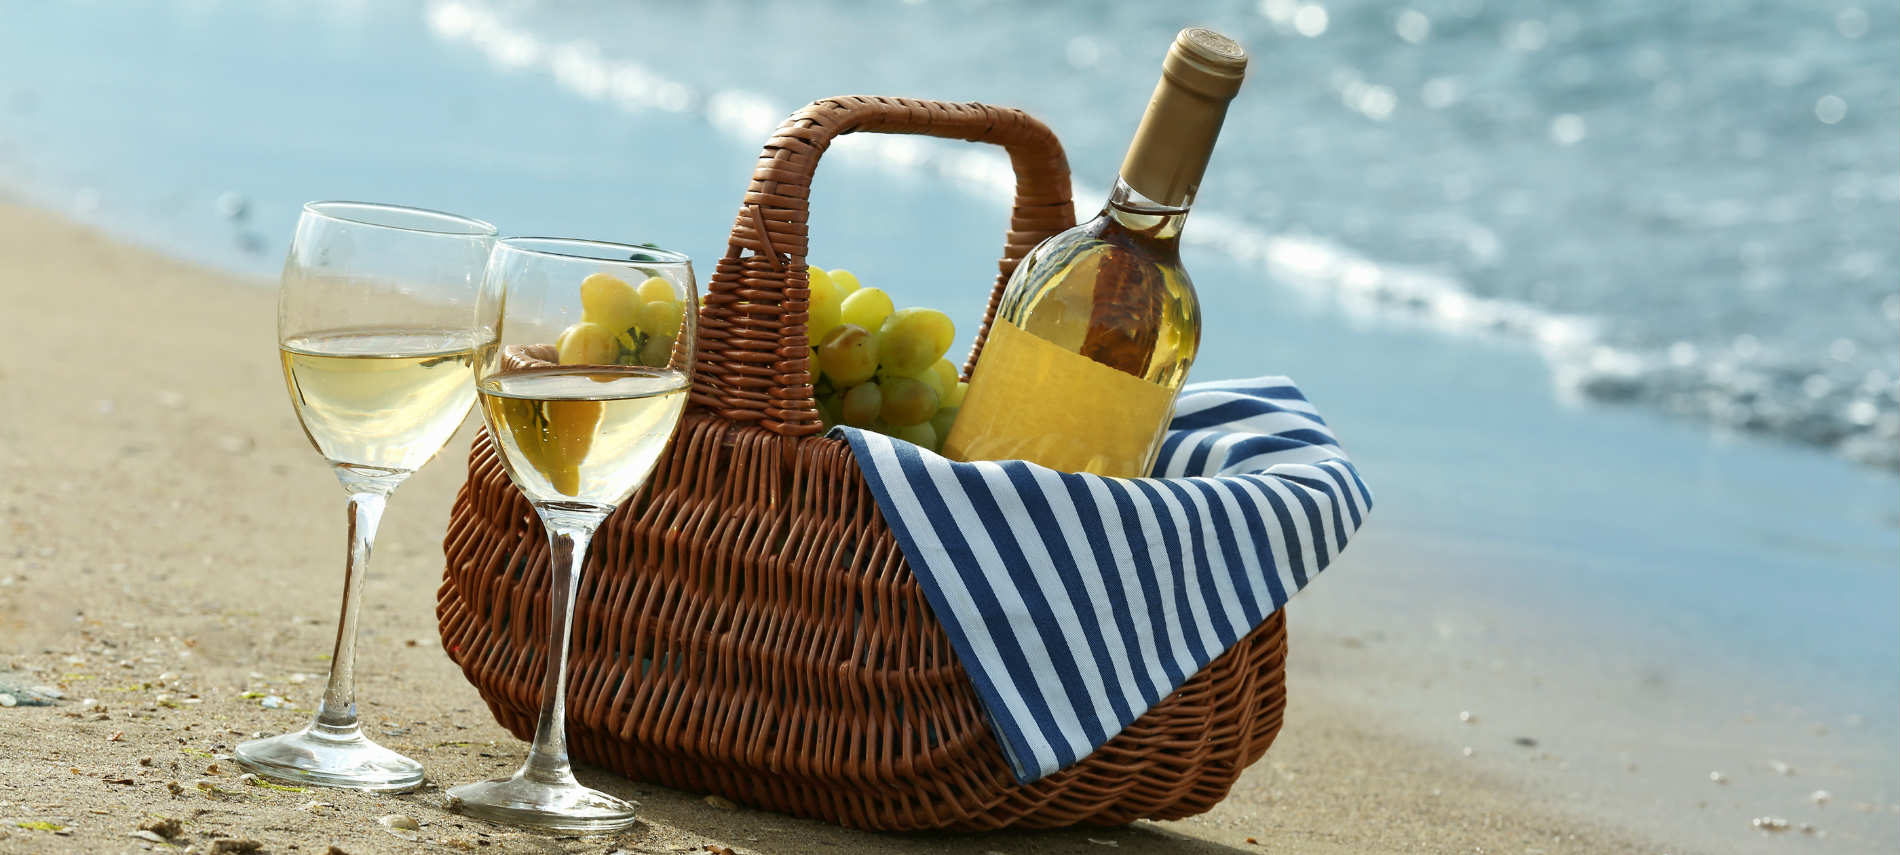 Basket filled with wine and grapes on a beach next to two glasses of white wine